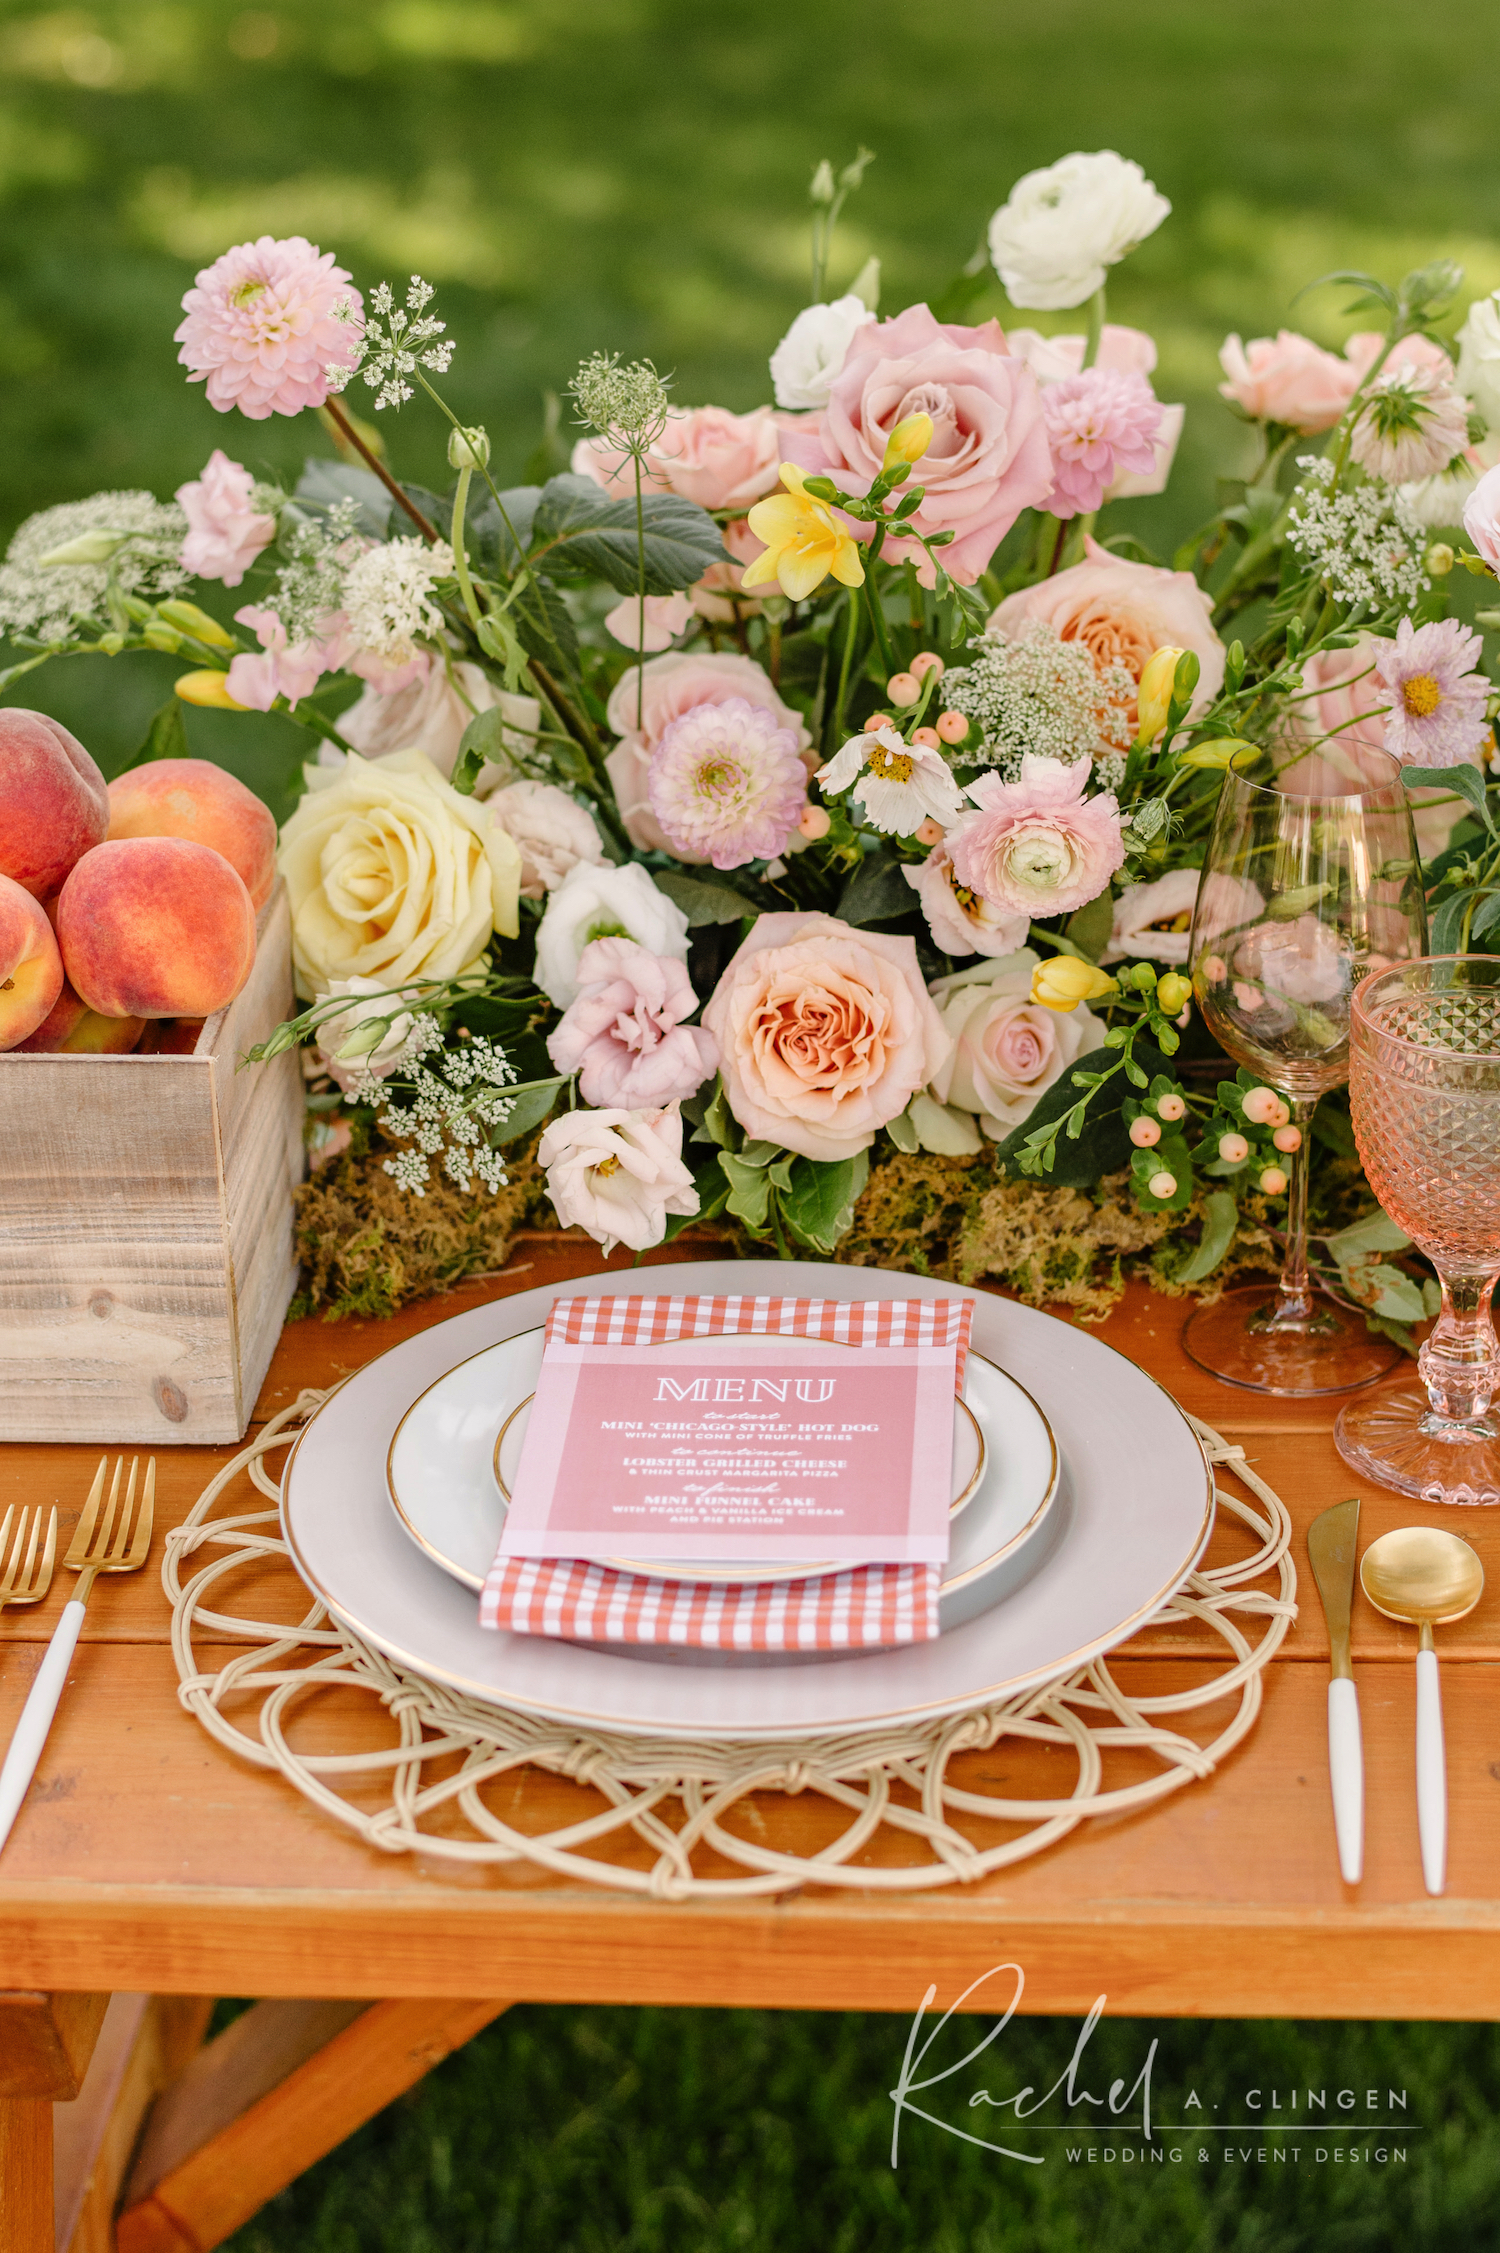 picnic party birthday place setting